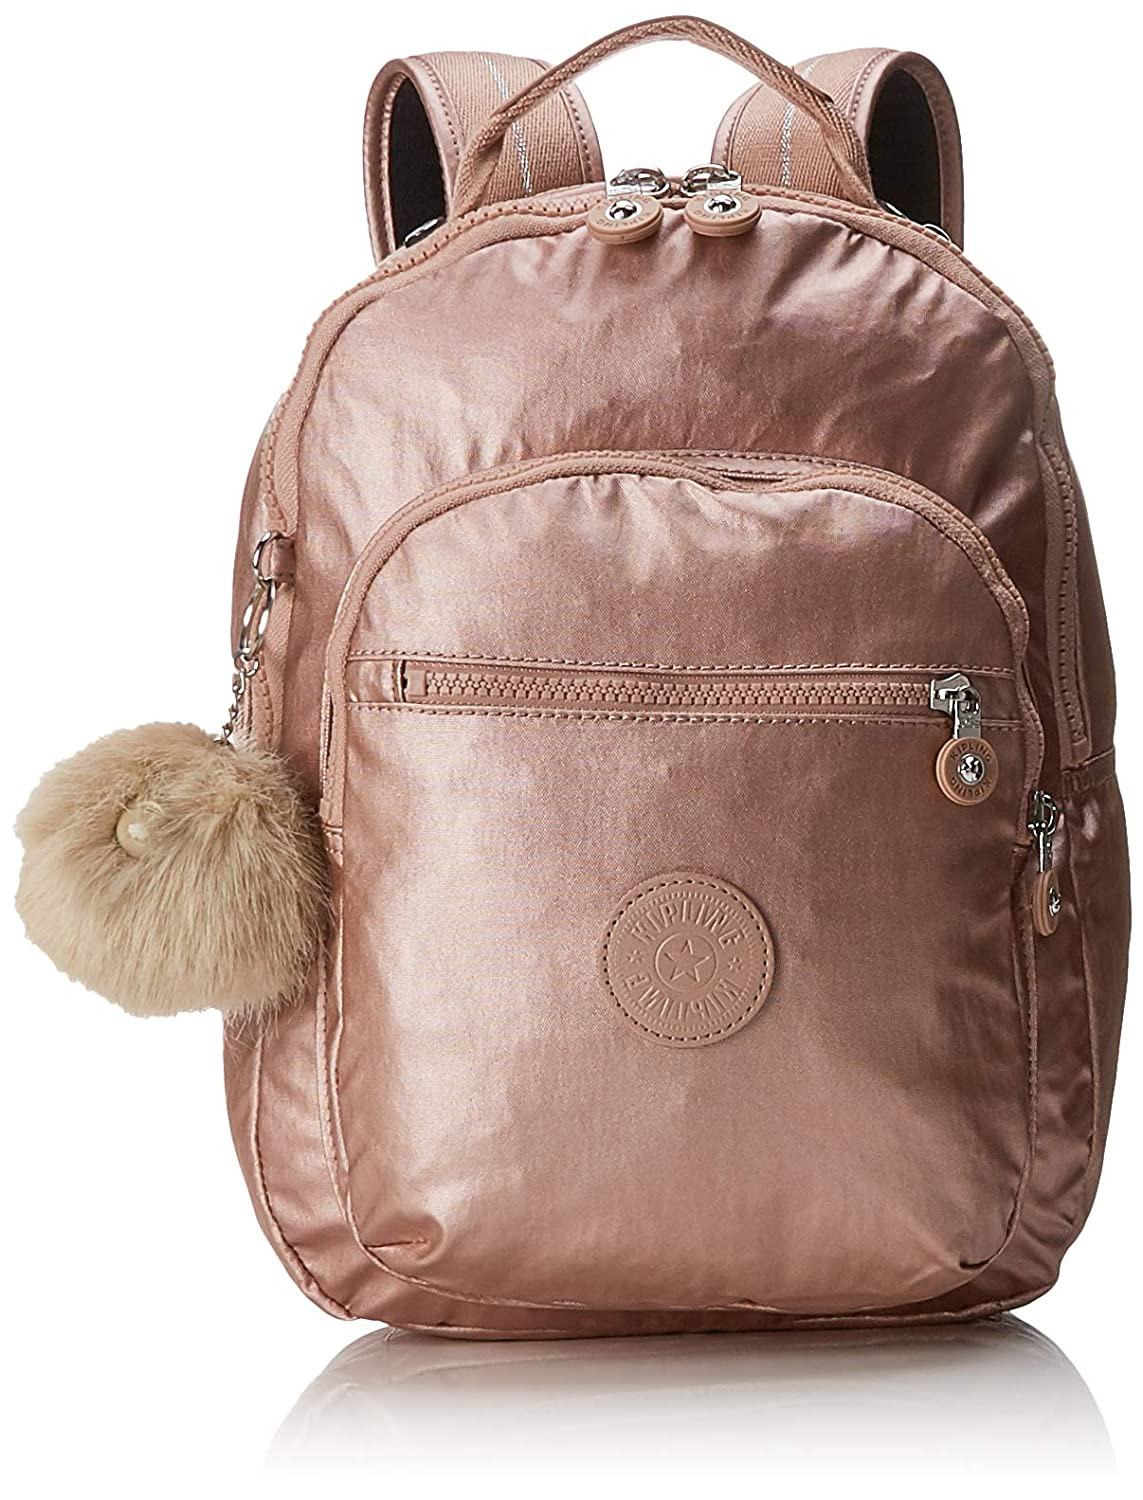 e7140ae5f2 Kipling CLAS SEOUL S School Backpack, 34 cm, 10 liters, Gold (Metallic  Blush): Amazon.co.uk: Luggage